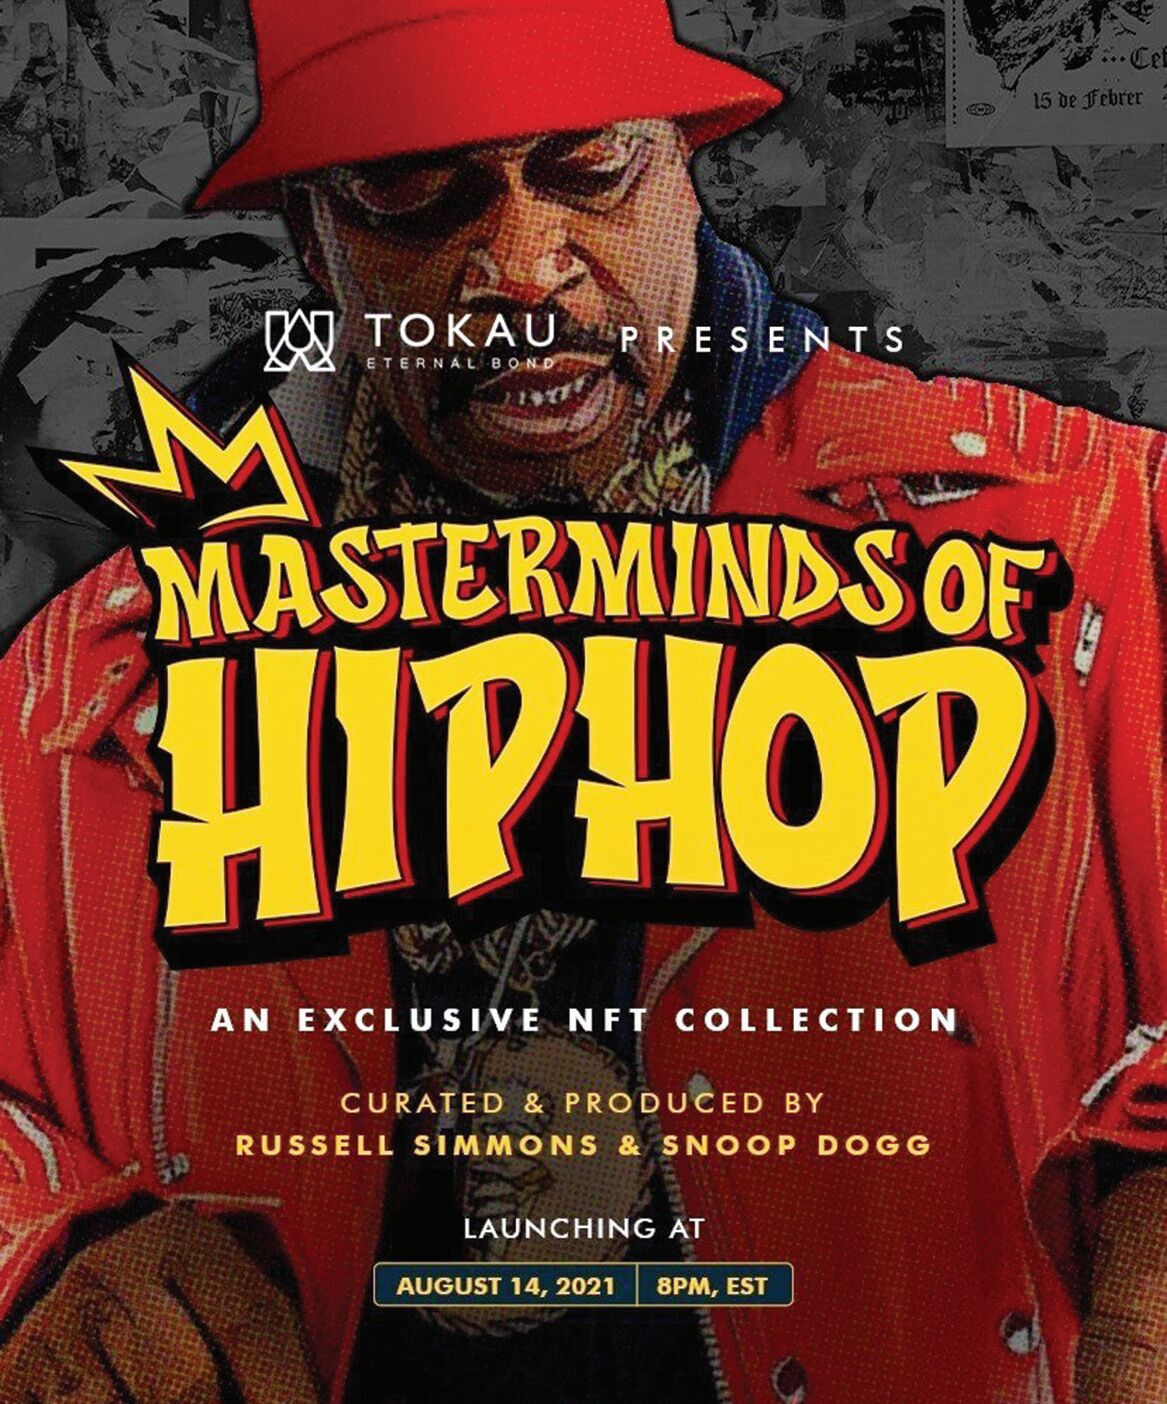 Simmons, Snoop Dogg launch 'Masterminds of Hip-Hop' collection